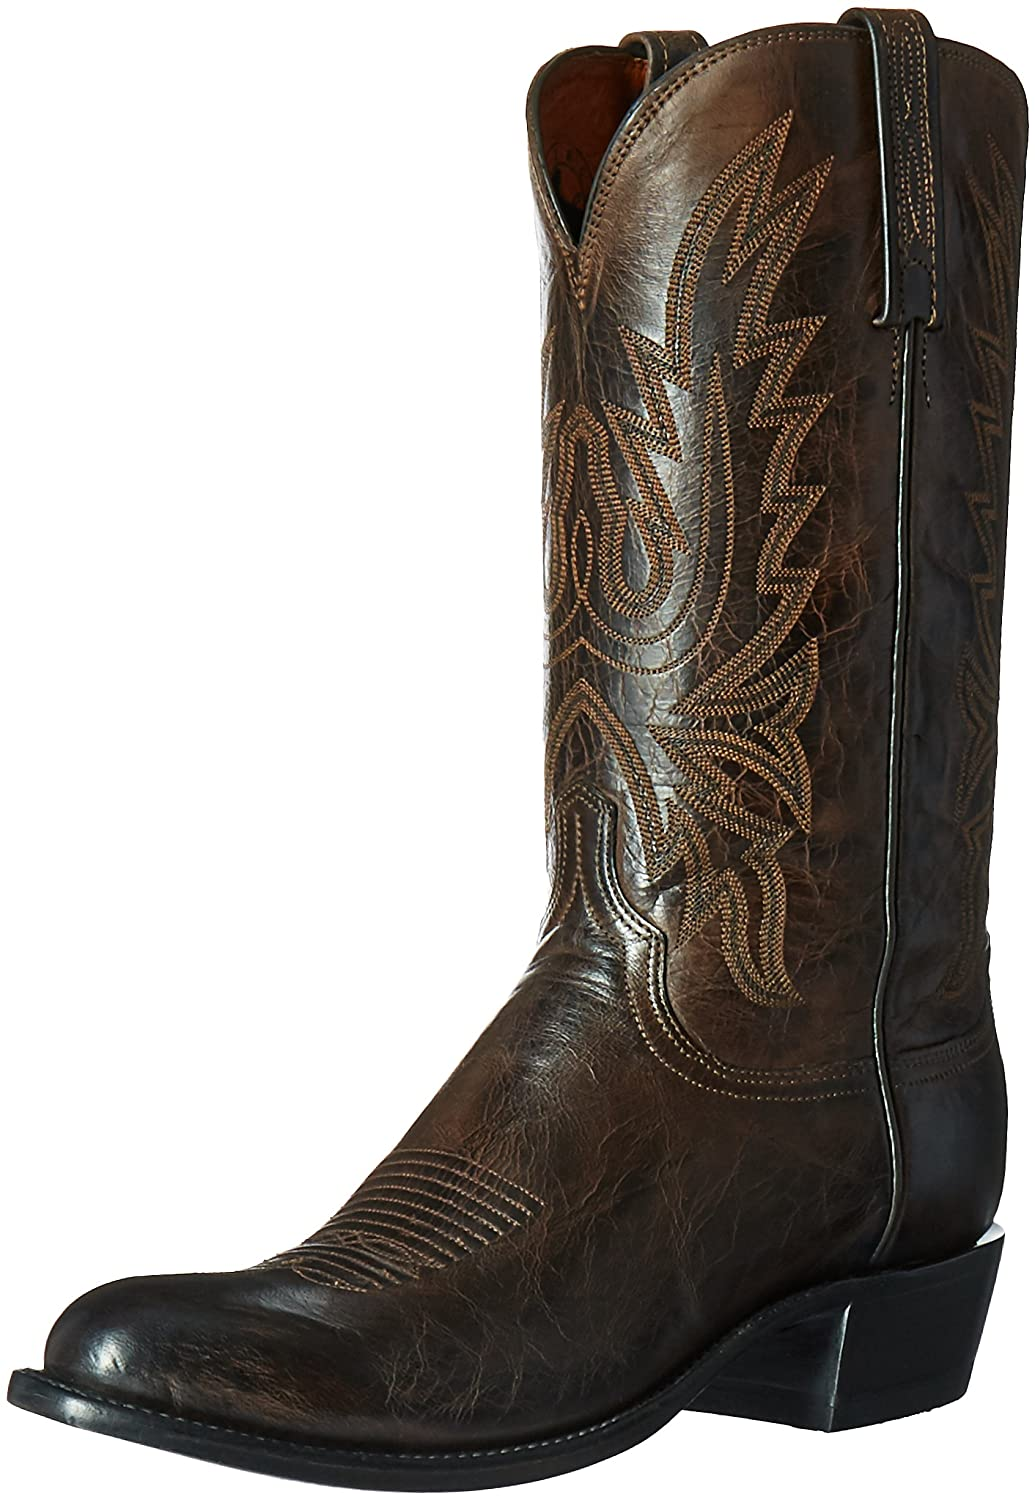 1883 by Lucchese Men's N1556-R4